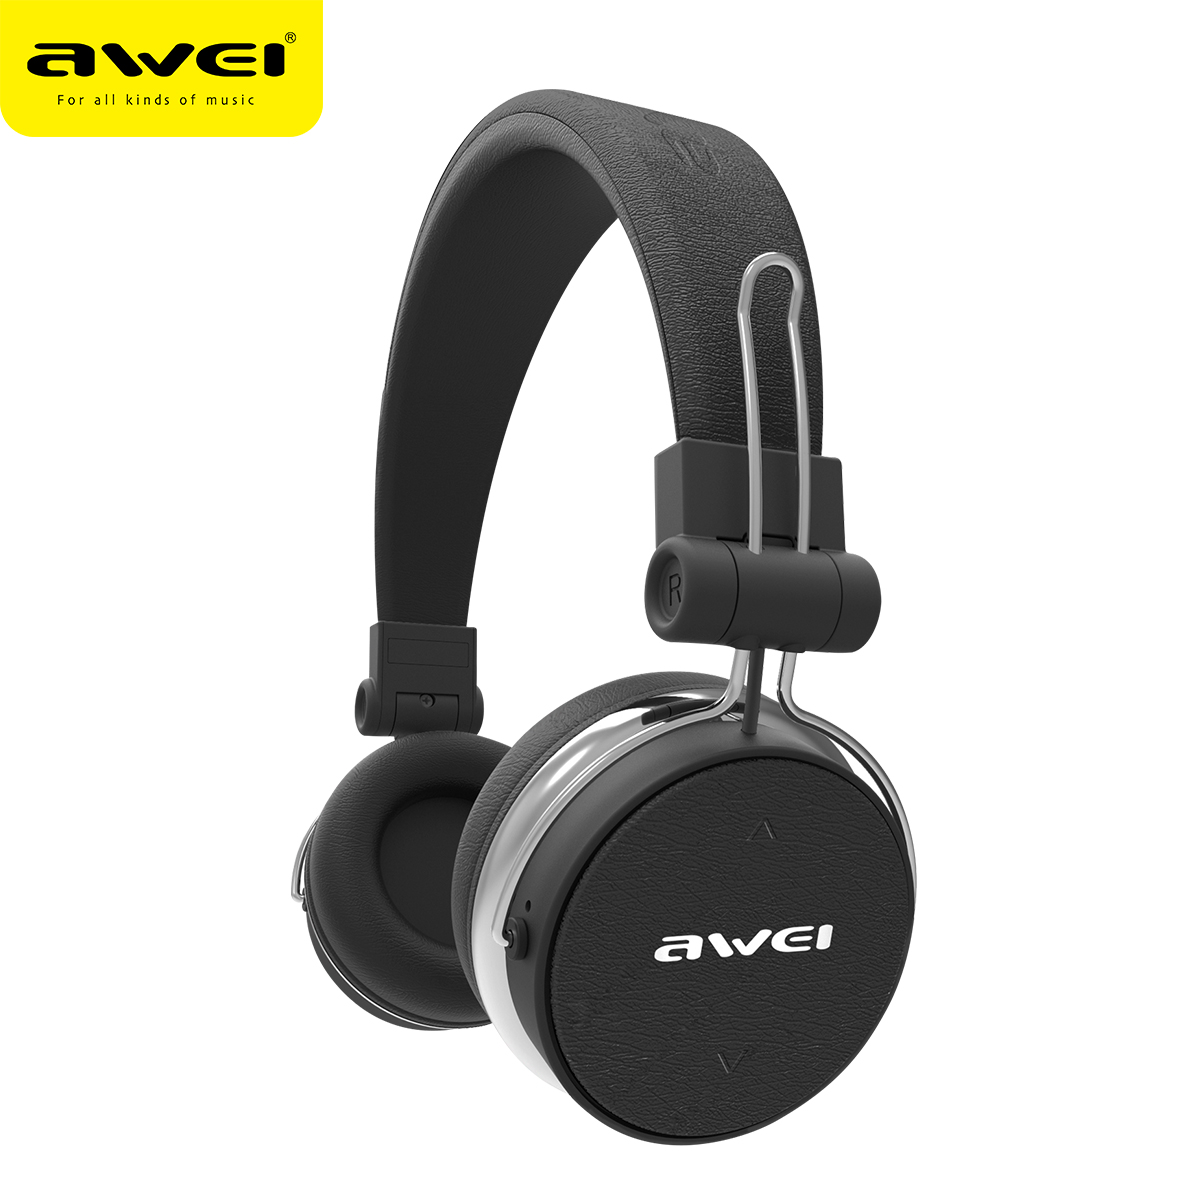 AWEI A700BL Bluetooth Headphone With Microphone Wireless Earphone Cordless Headset Stereo Casque Earpiece Auriculares Kulakl k awei x650bl bluetooth earphone wireless headphone neckband headset earpiece for phone casque auriculares kulakl k fone de ouvido